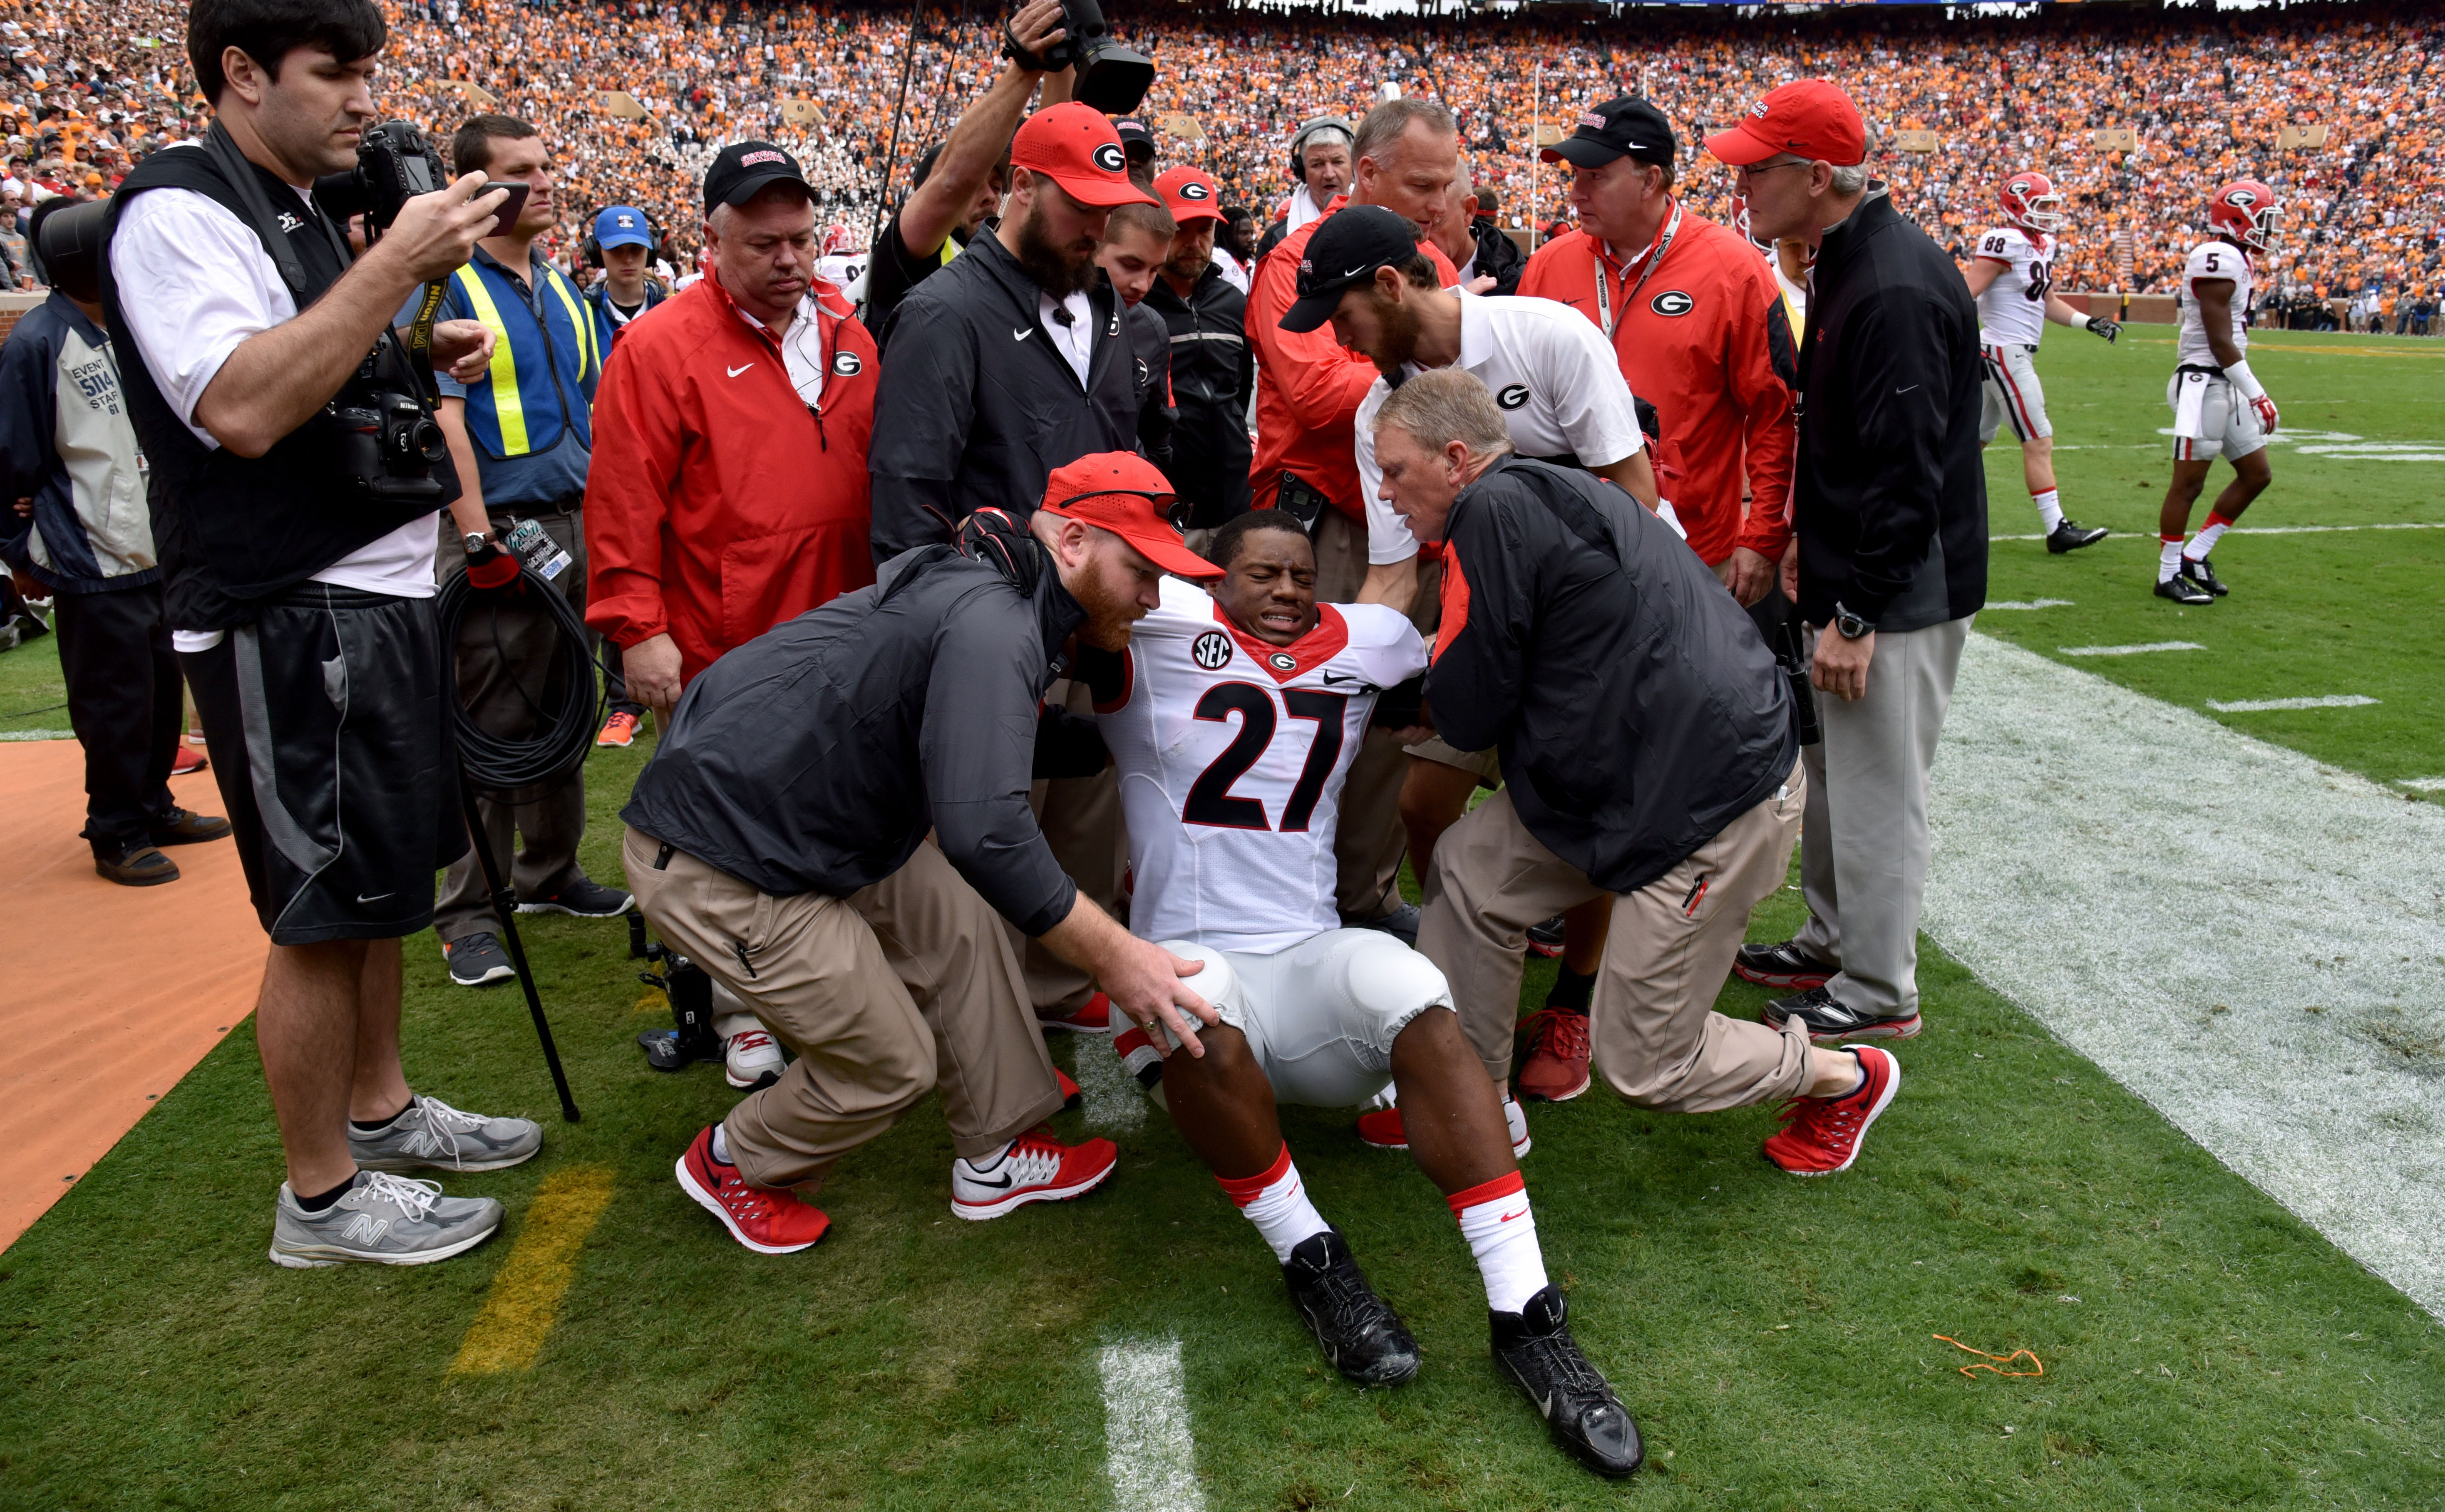 Georgia running back Nick Chubb is helped off the field after injuring his left knee on the first play from scrimmage during an NCAA college football game against Tennessee, Saturday, Oct. 10, 2015, in Knoxville, Tenn.  (Brant Sanderlin/Atlanta Journal-Co